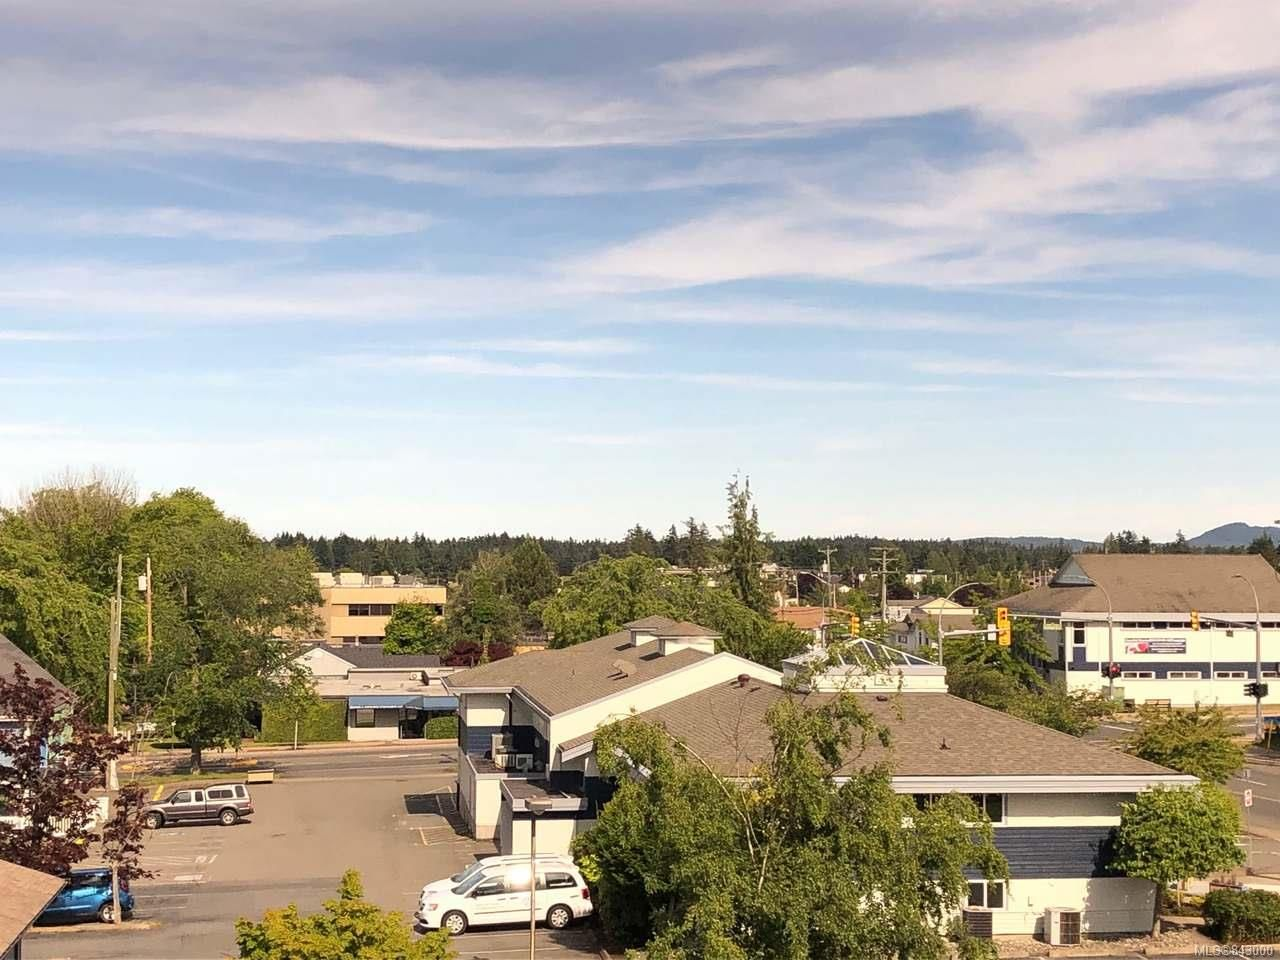 Photo 14: Photos: 405 255 W Hirst Ave in PARKSVILLE: PQ Parksville Condo for sale (Parksville/Qualicum)  : MLS®# 843000